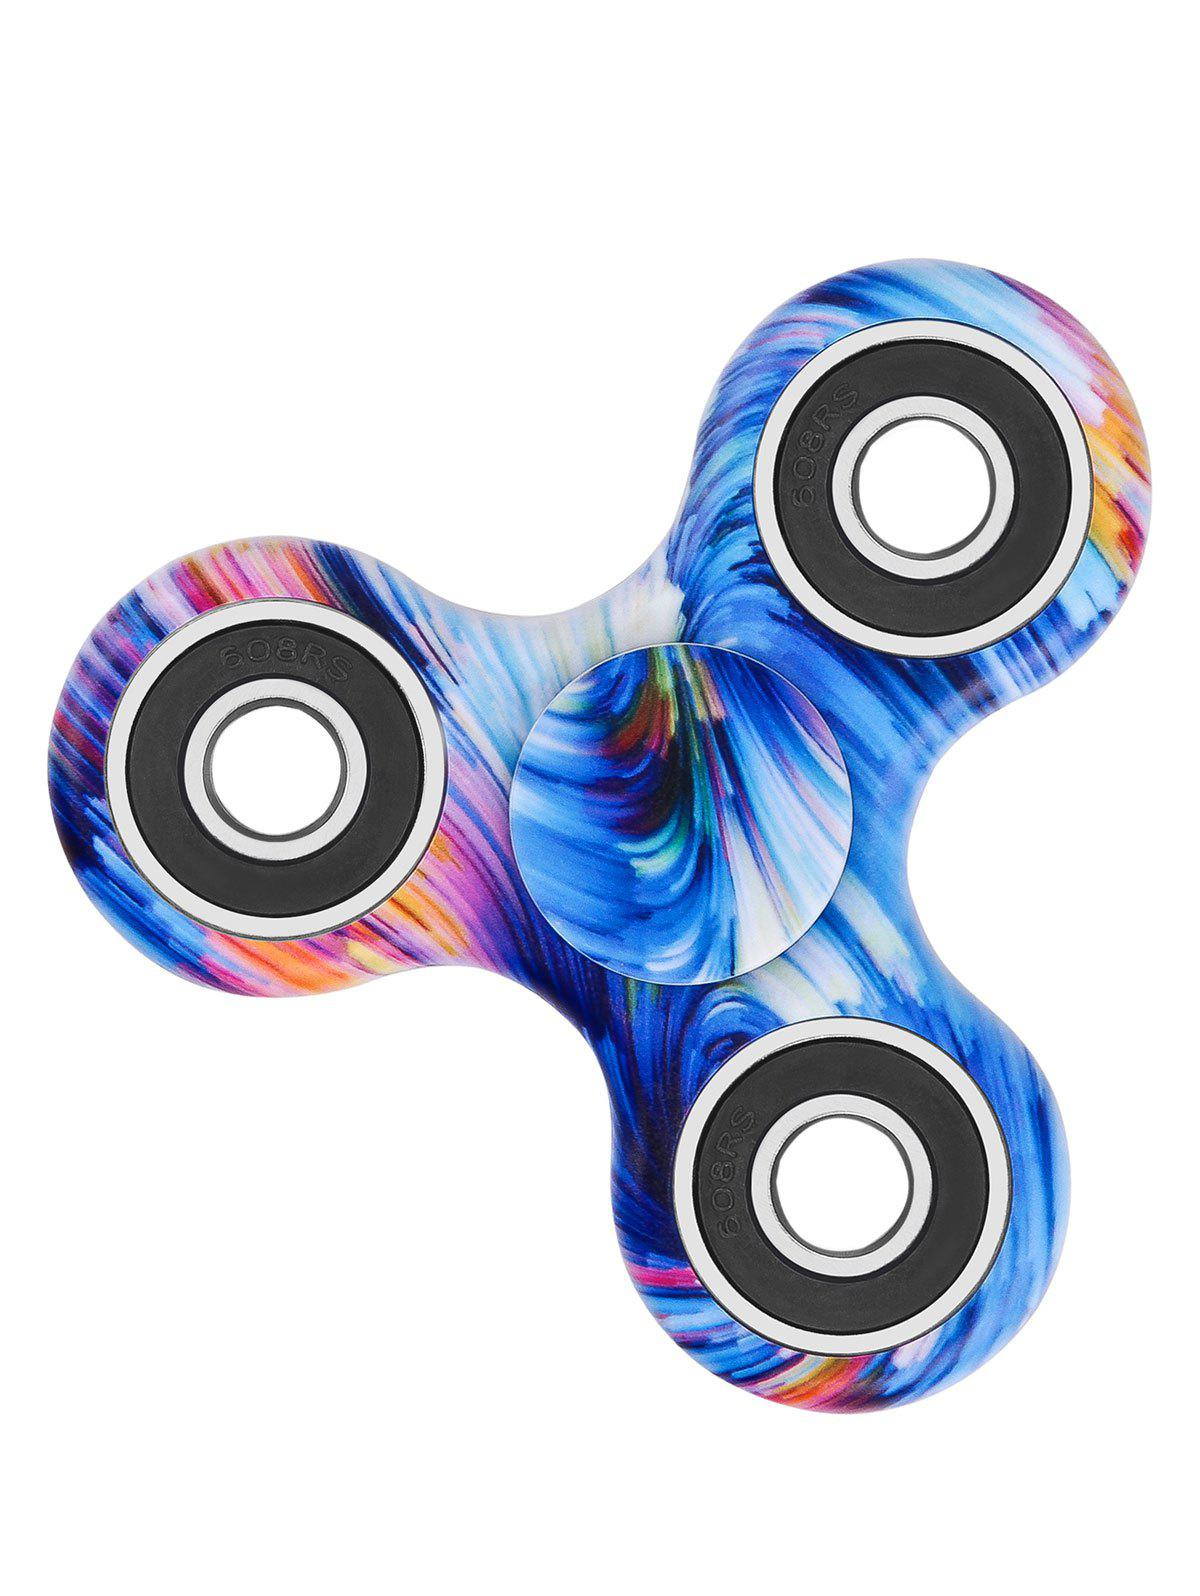 Star Sky Print Stress Relief Focus Toy Fidget Spinner - BLUE